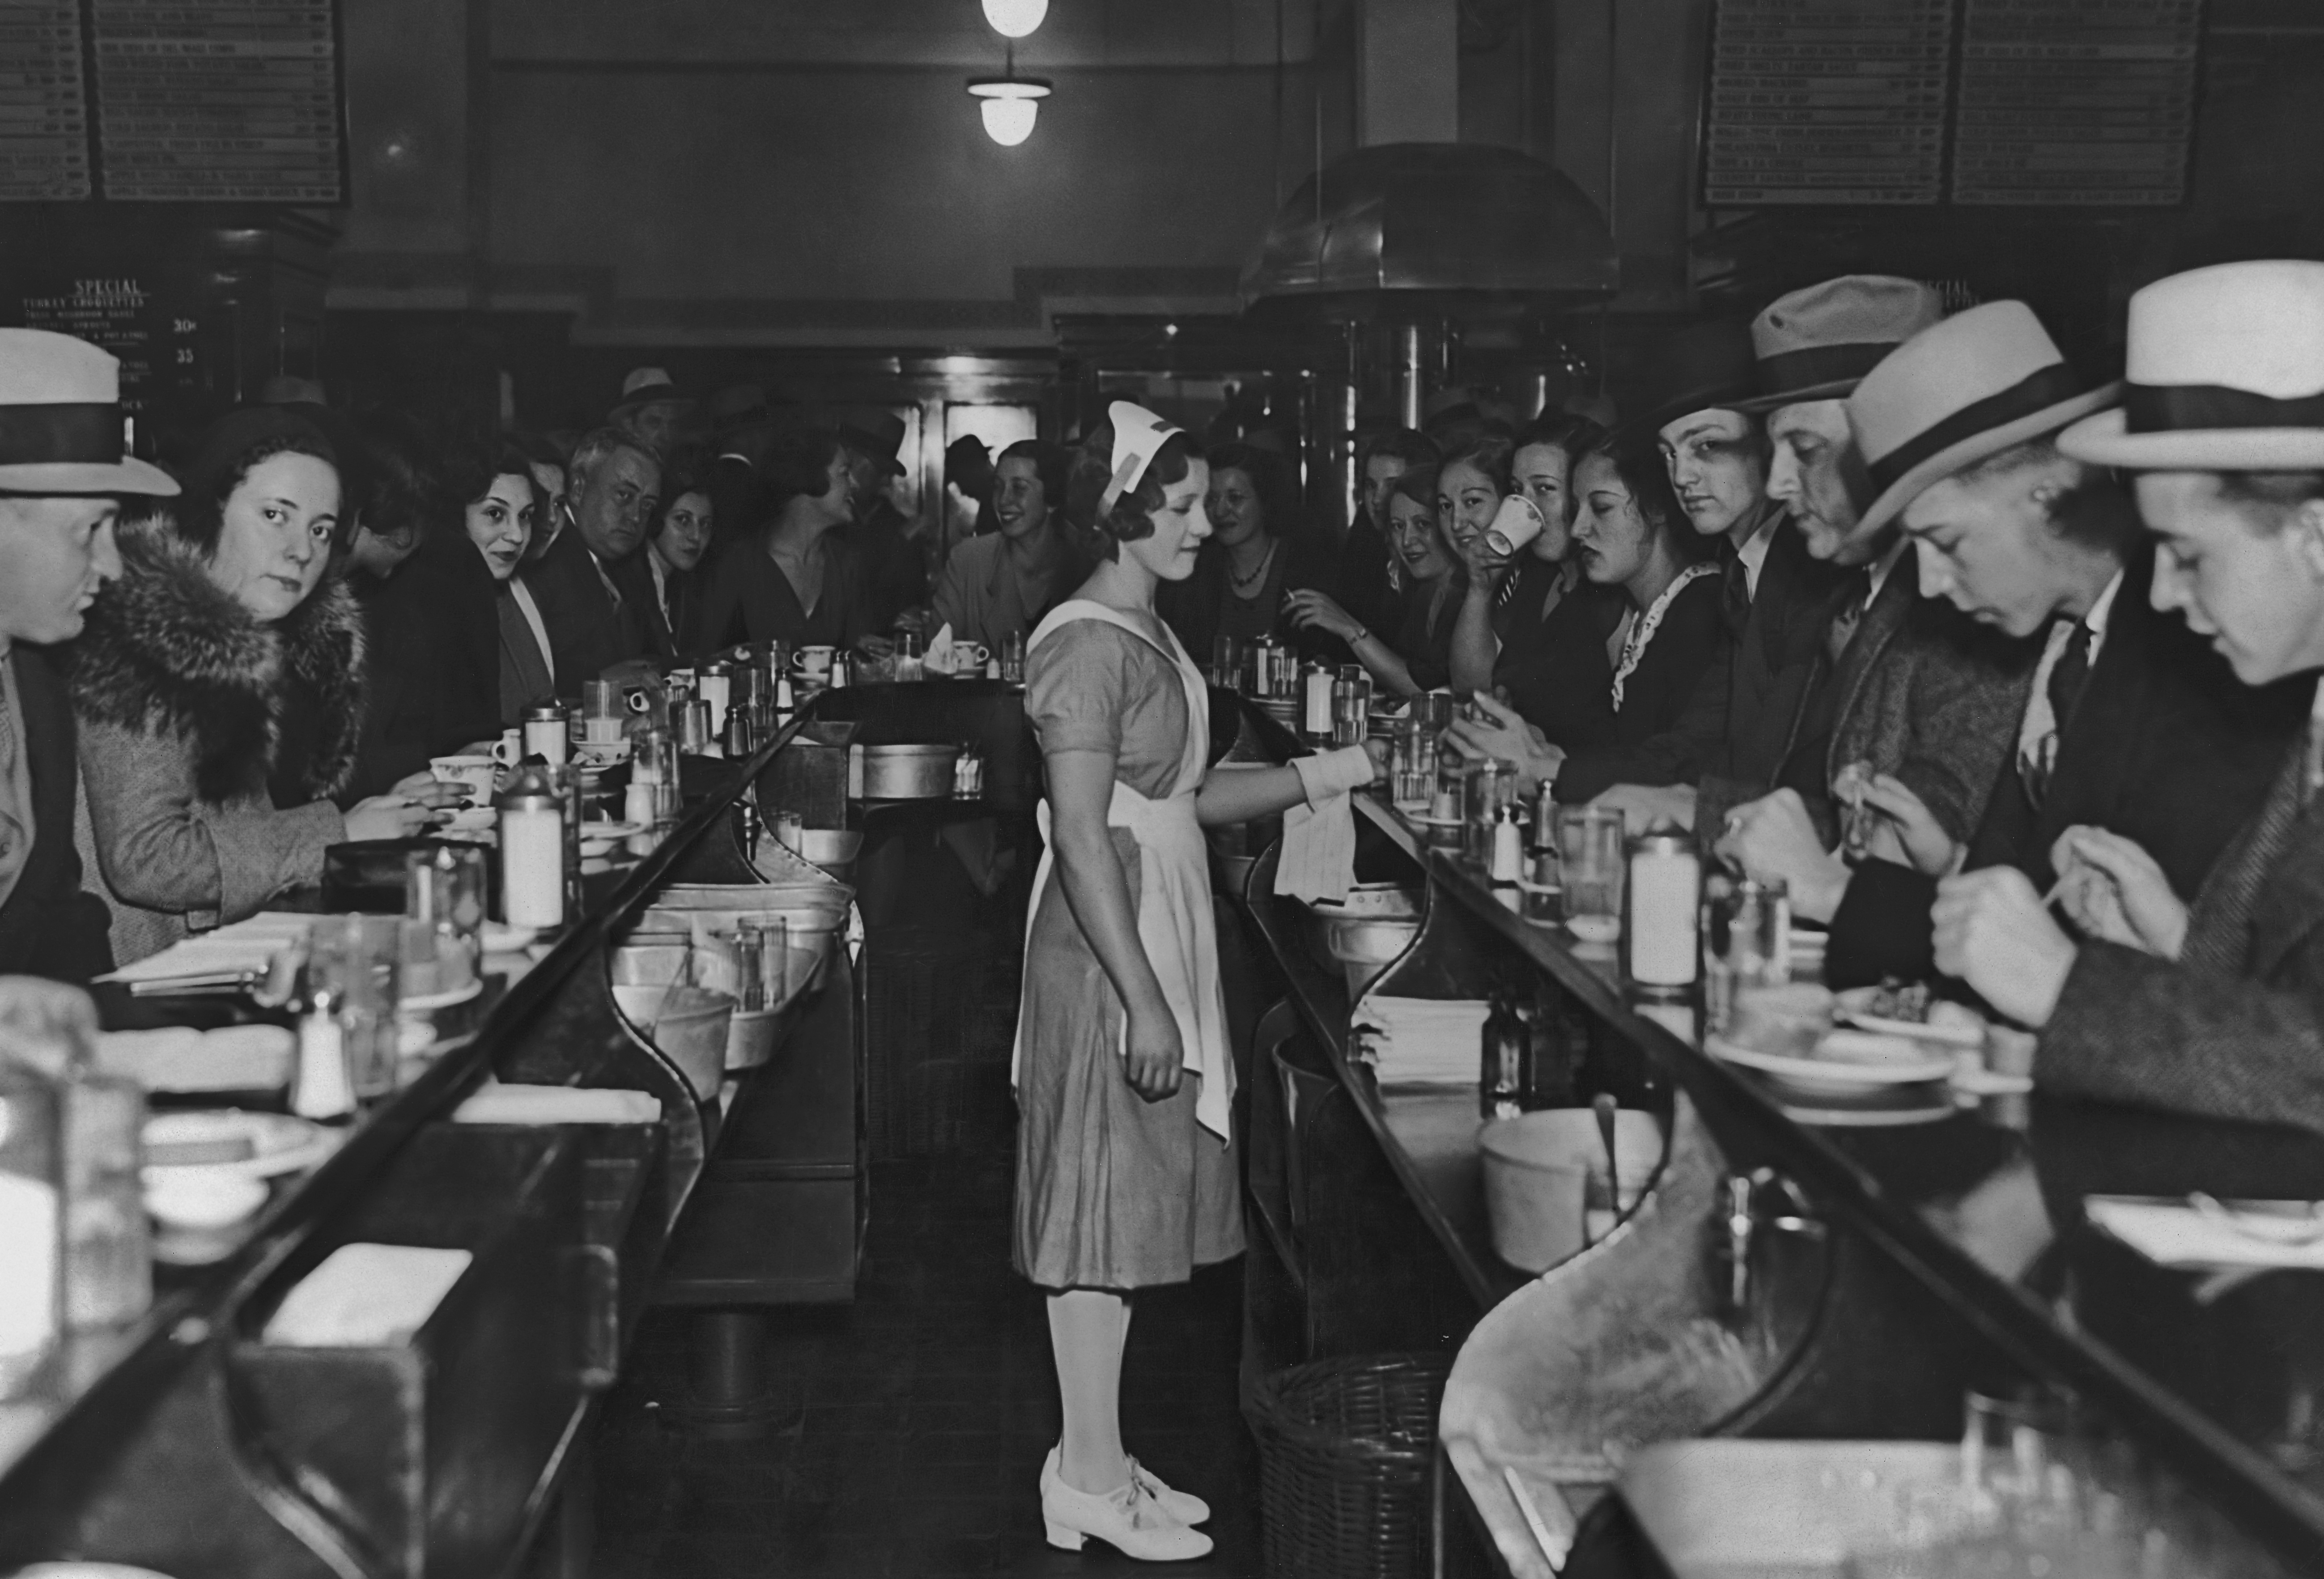 How Diner Waitress Uniforms Have Evolved From Scandalous